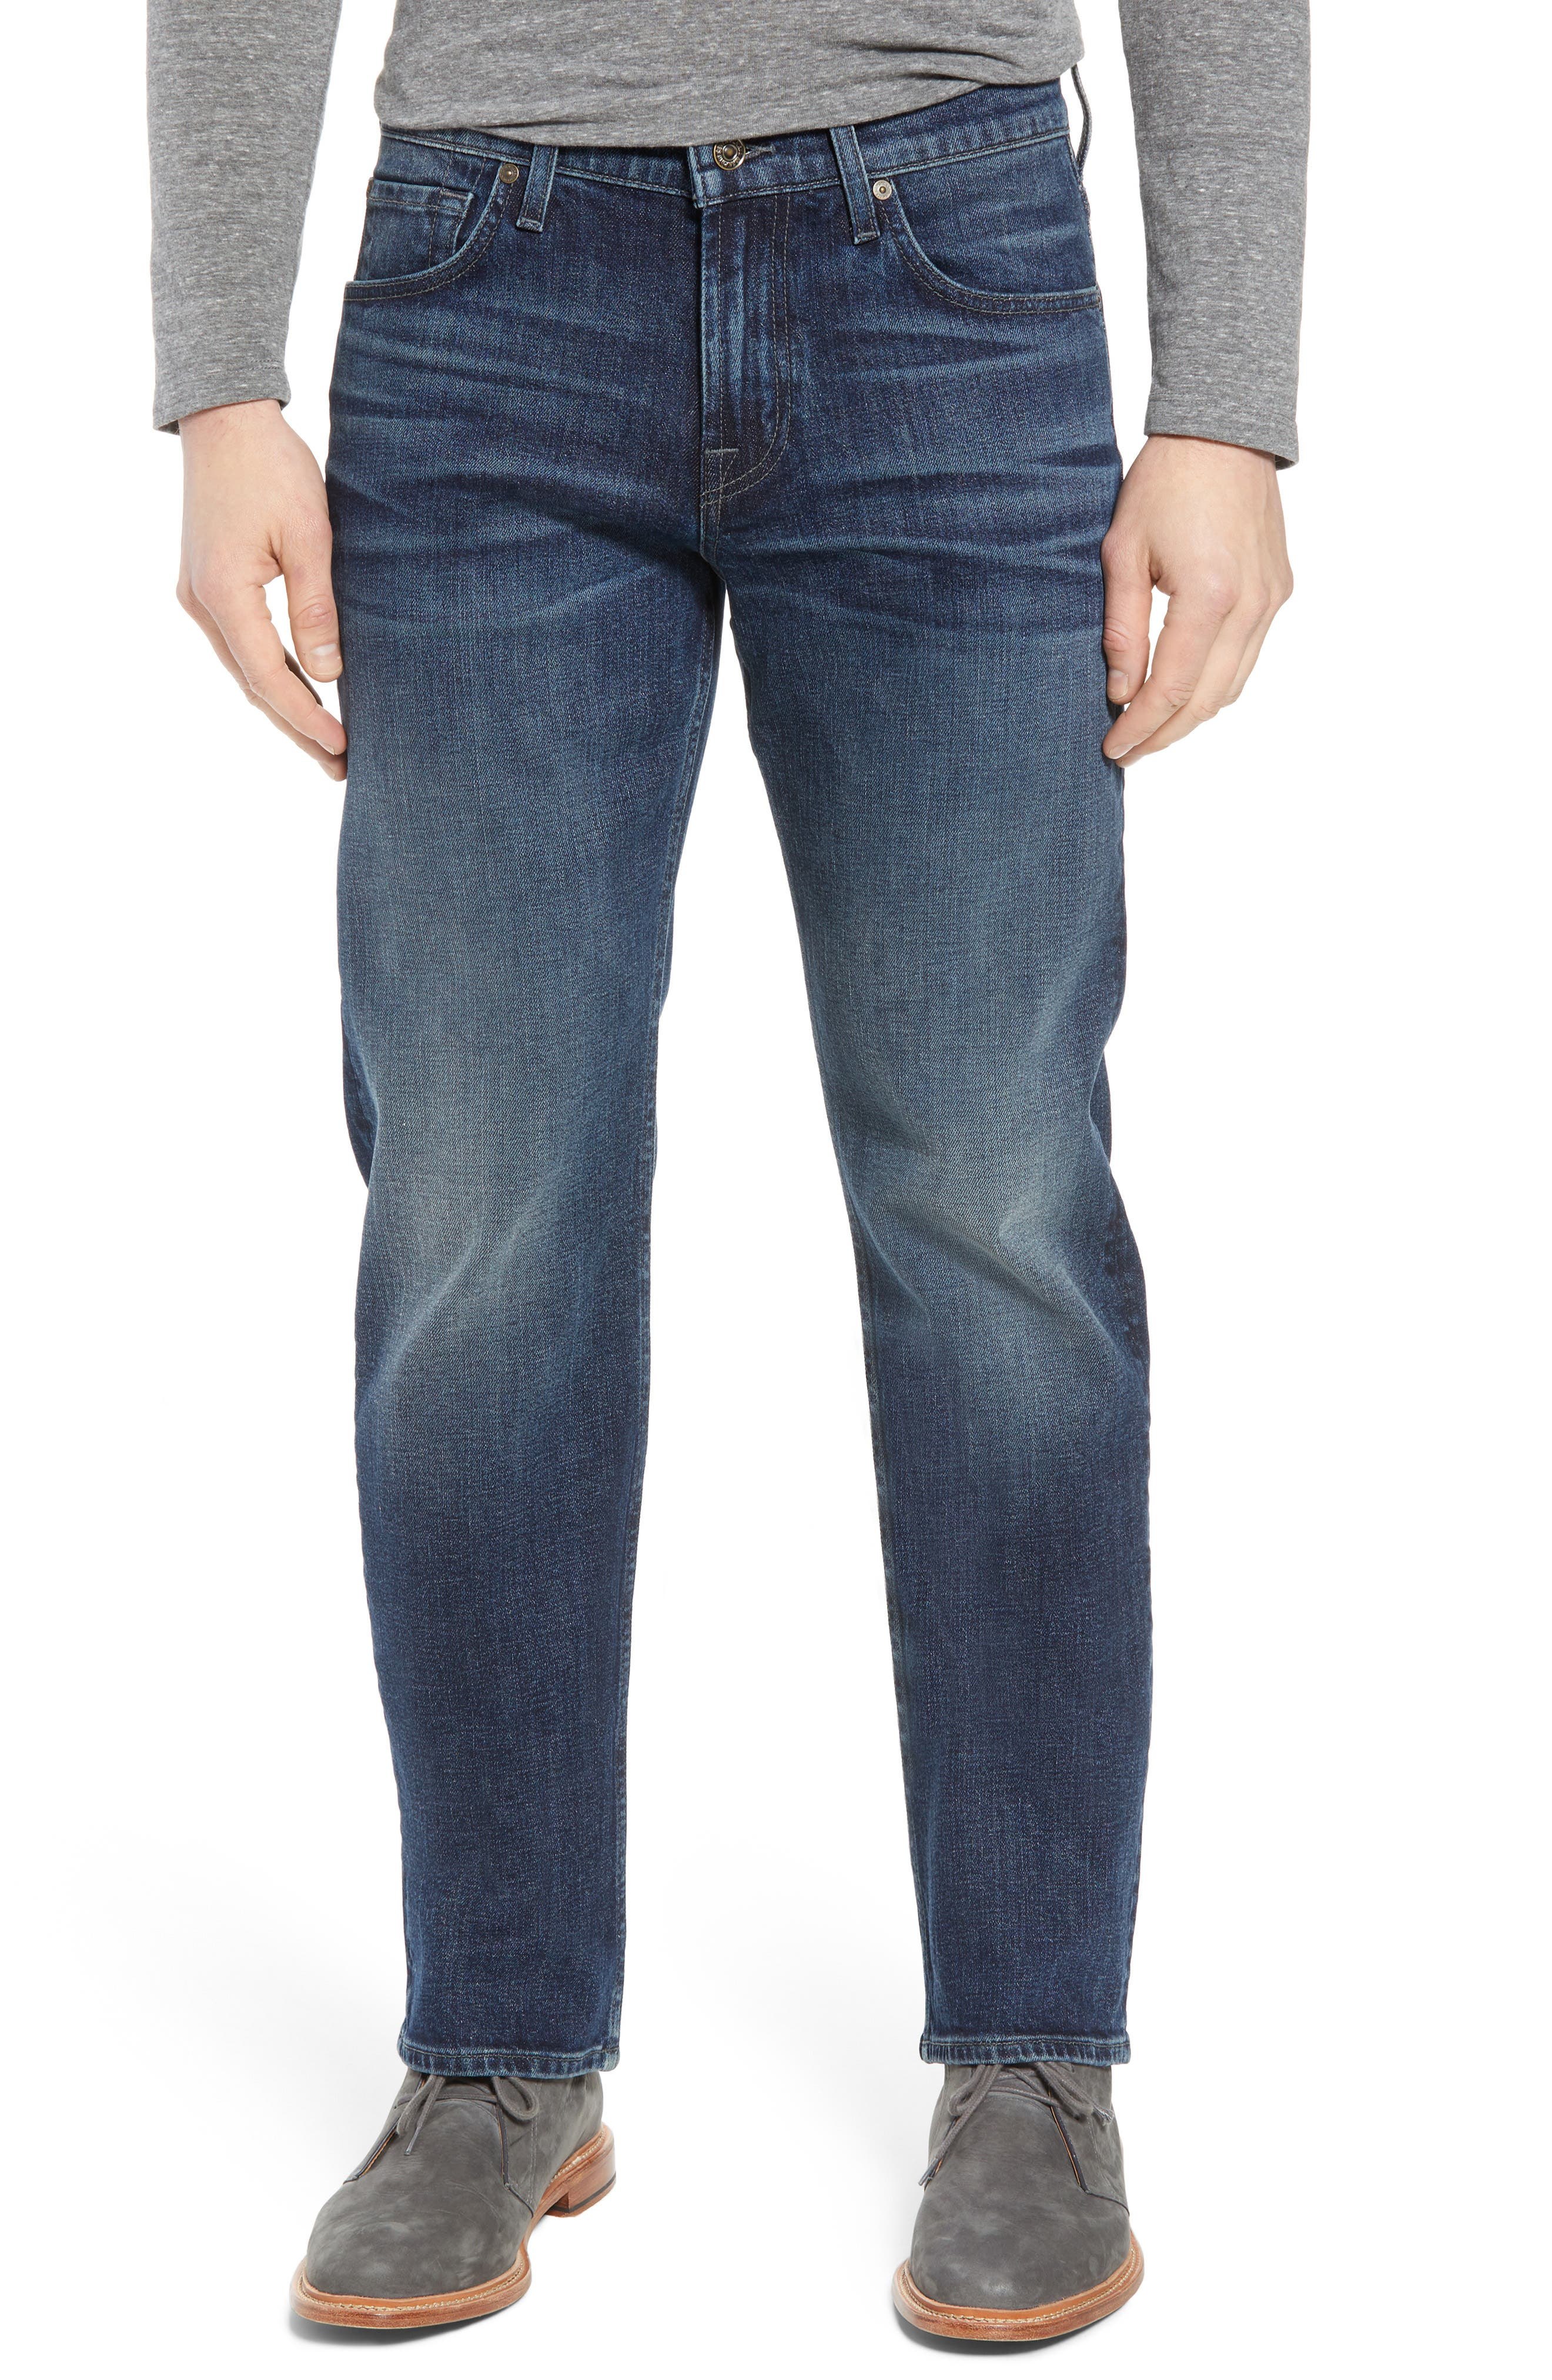 Austyn Relaxed Fit Jeans,                             Main thumbnail 1, color,                             Untouchable